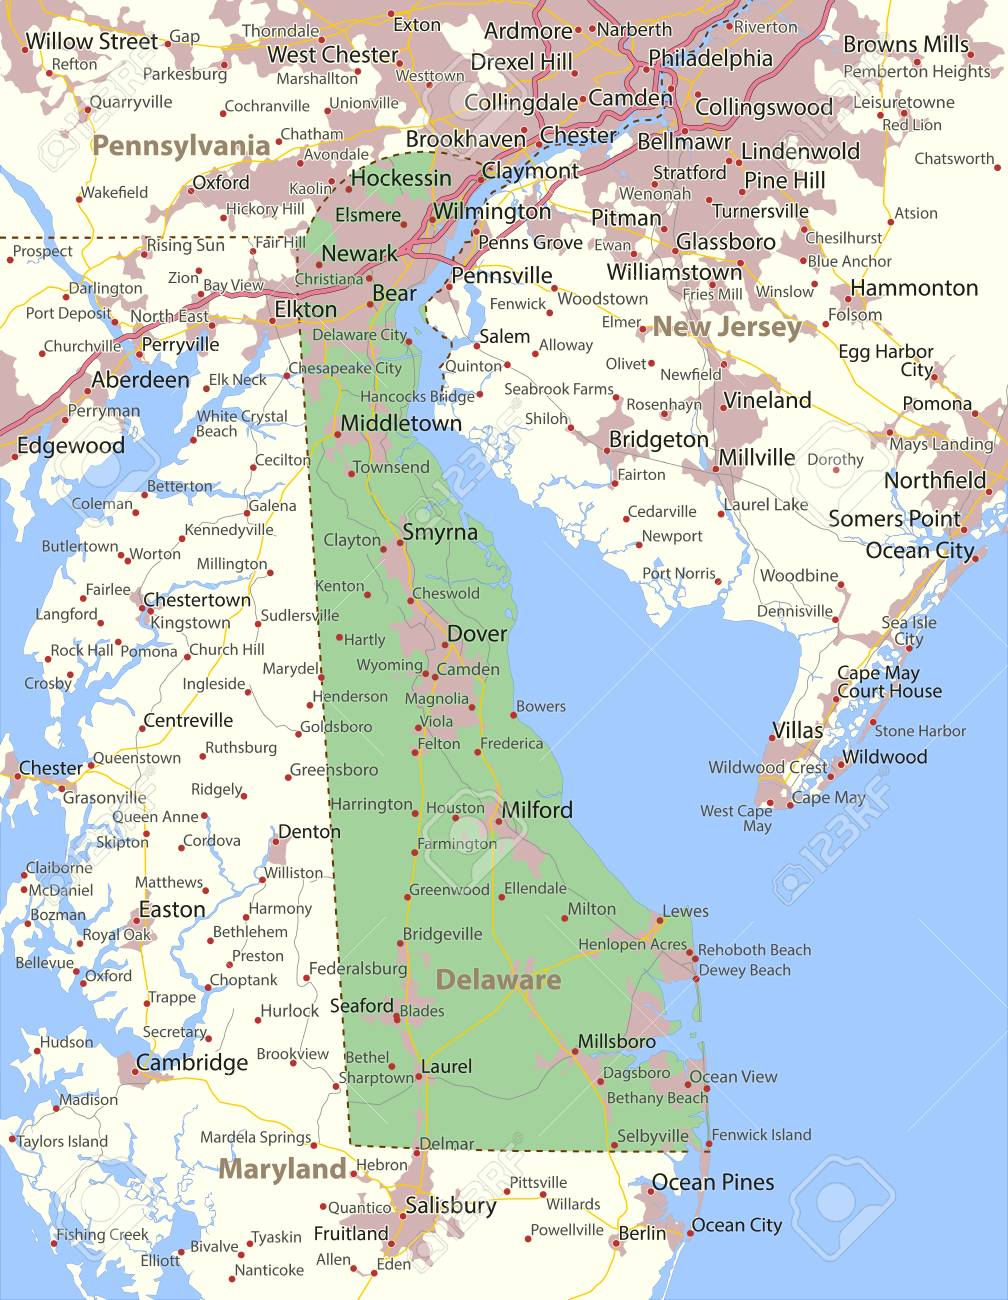 Map Of Delaware. Shows State Borders, Urban Areas, Place Names ...